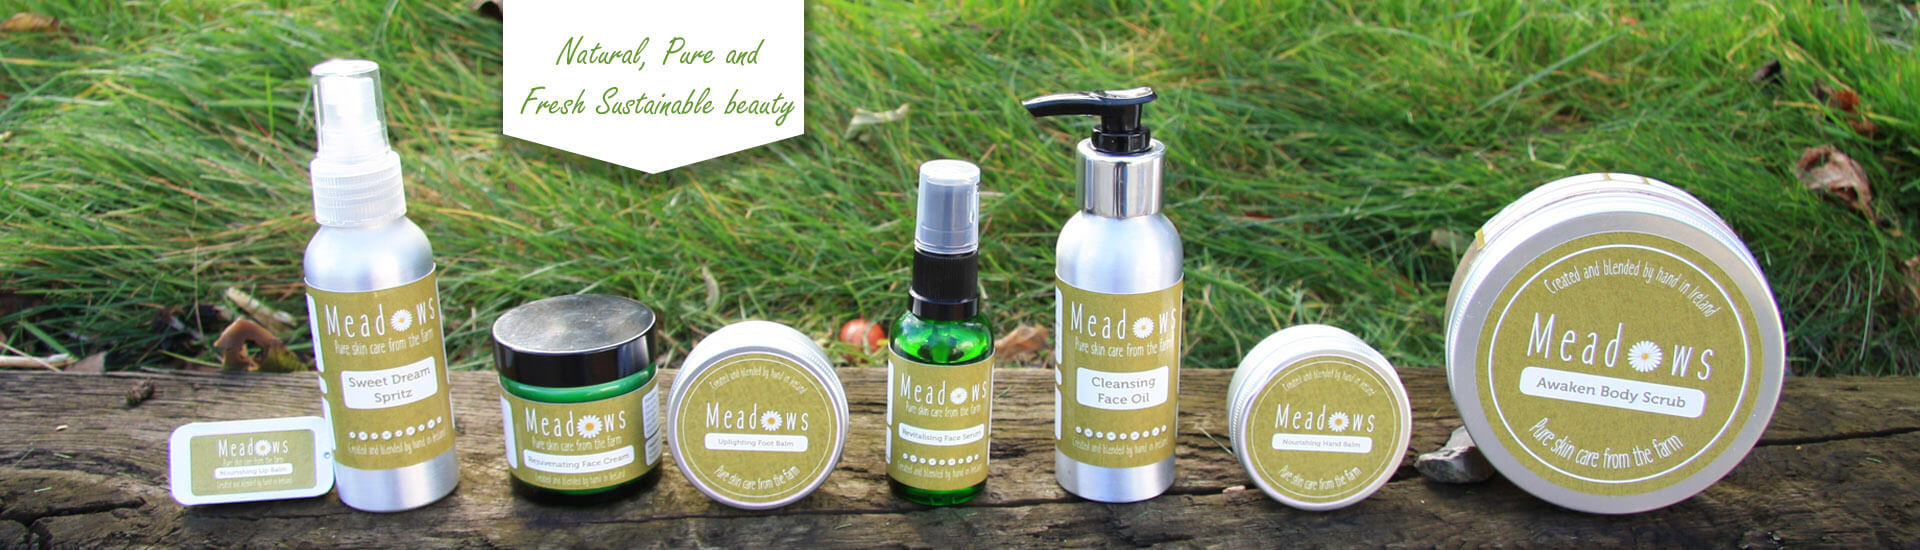 Natural Skin Care Products :: Meadows ie :: Handmade in IrelandHome